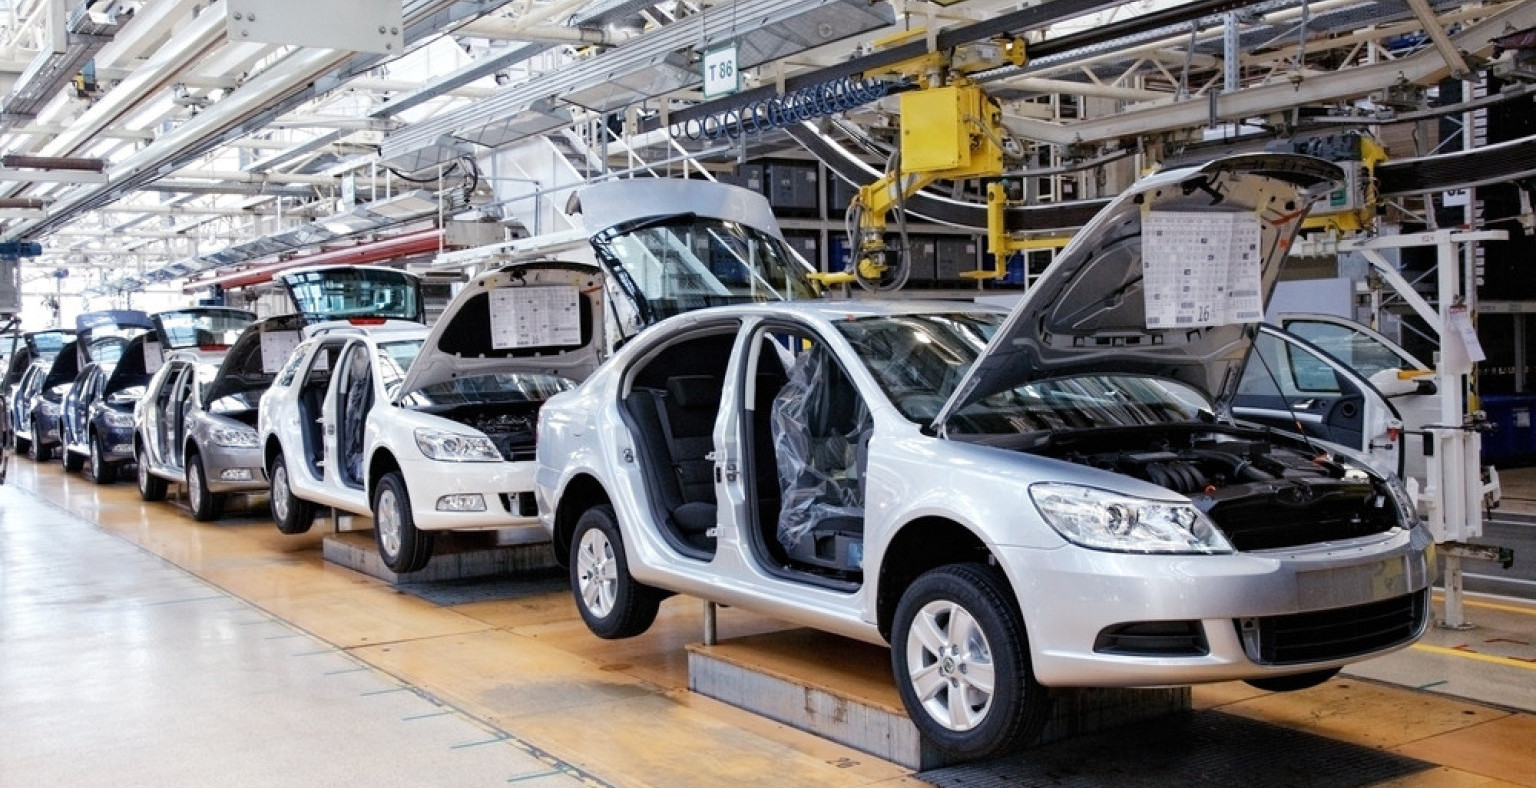 Exports from Automotive Industry to Russia to top 500 million USD